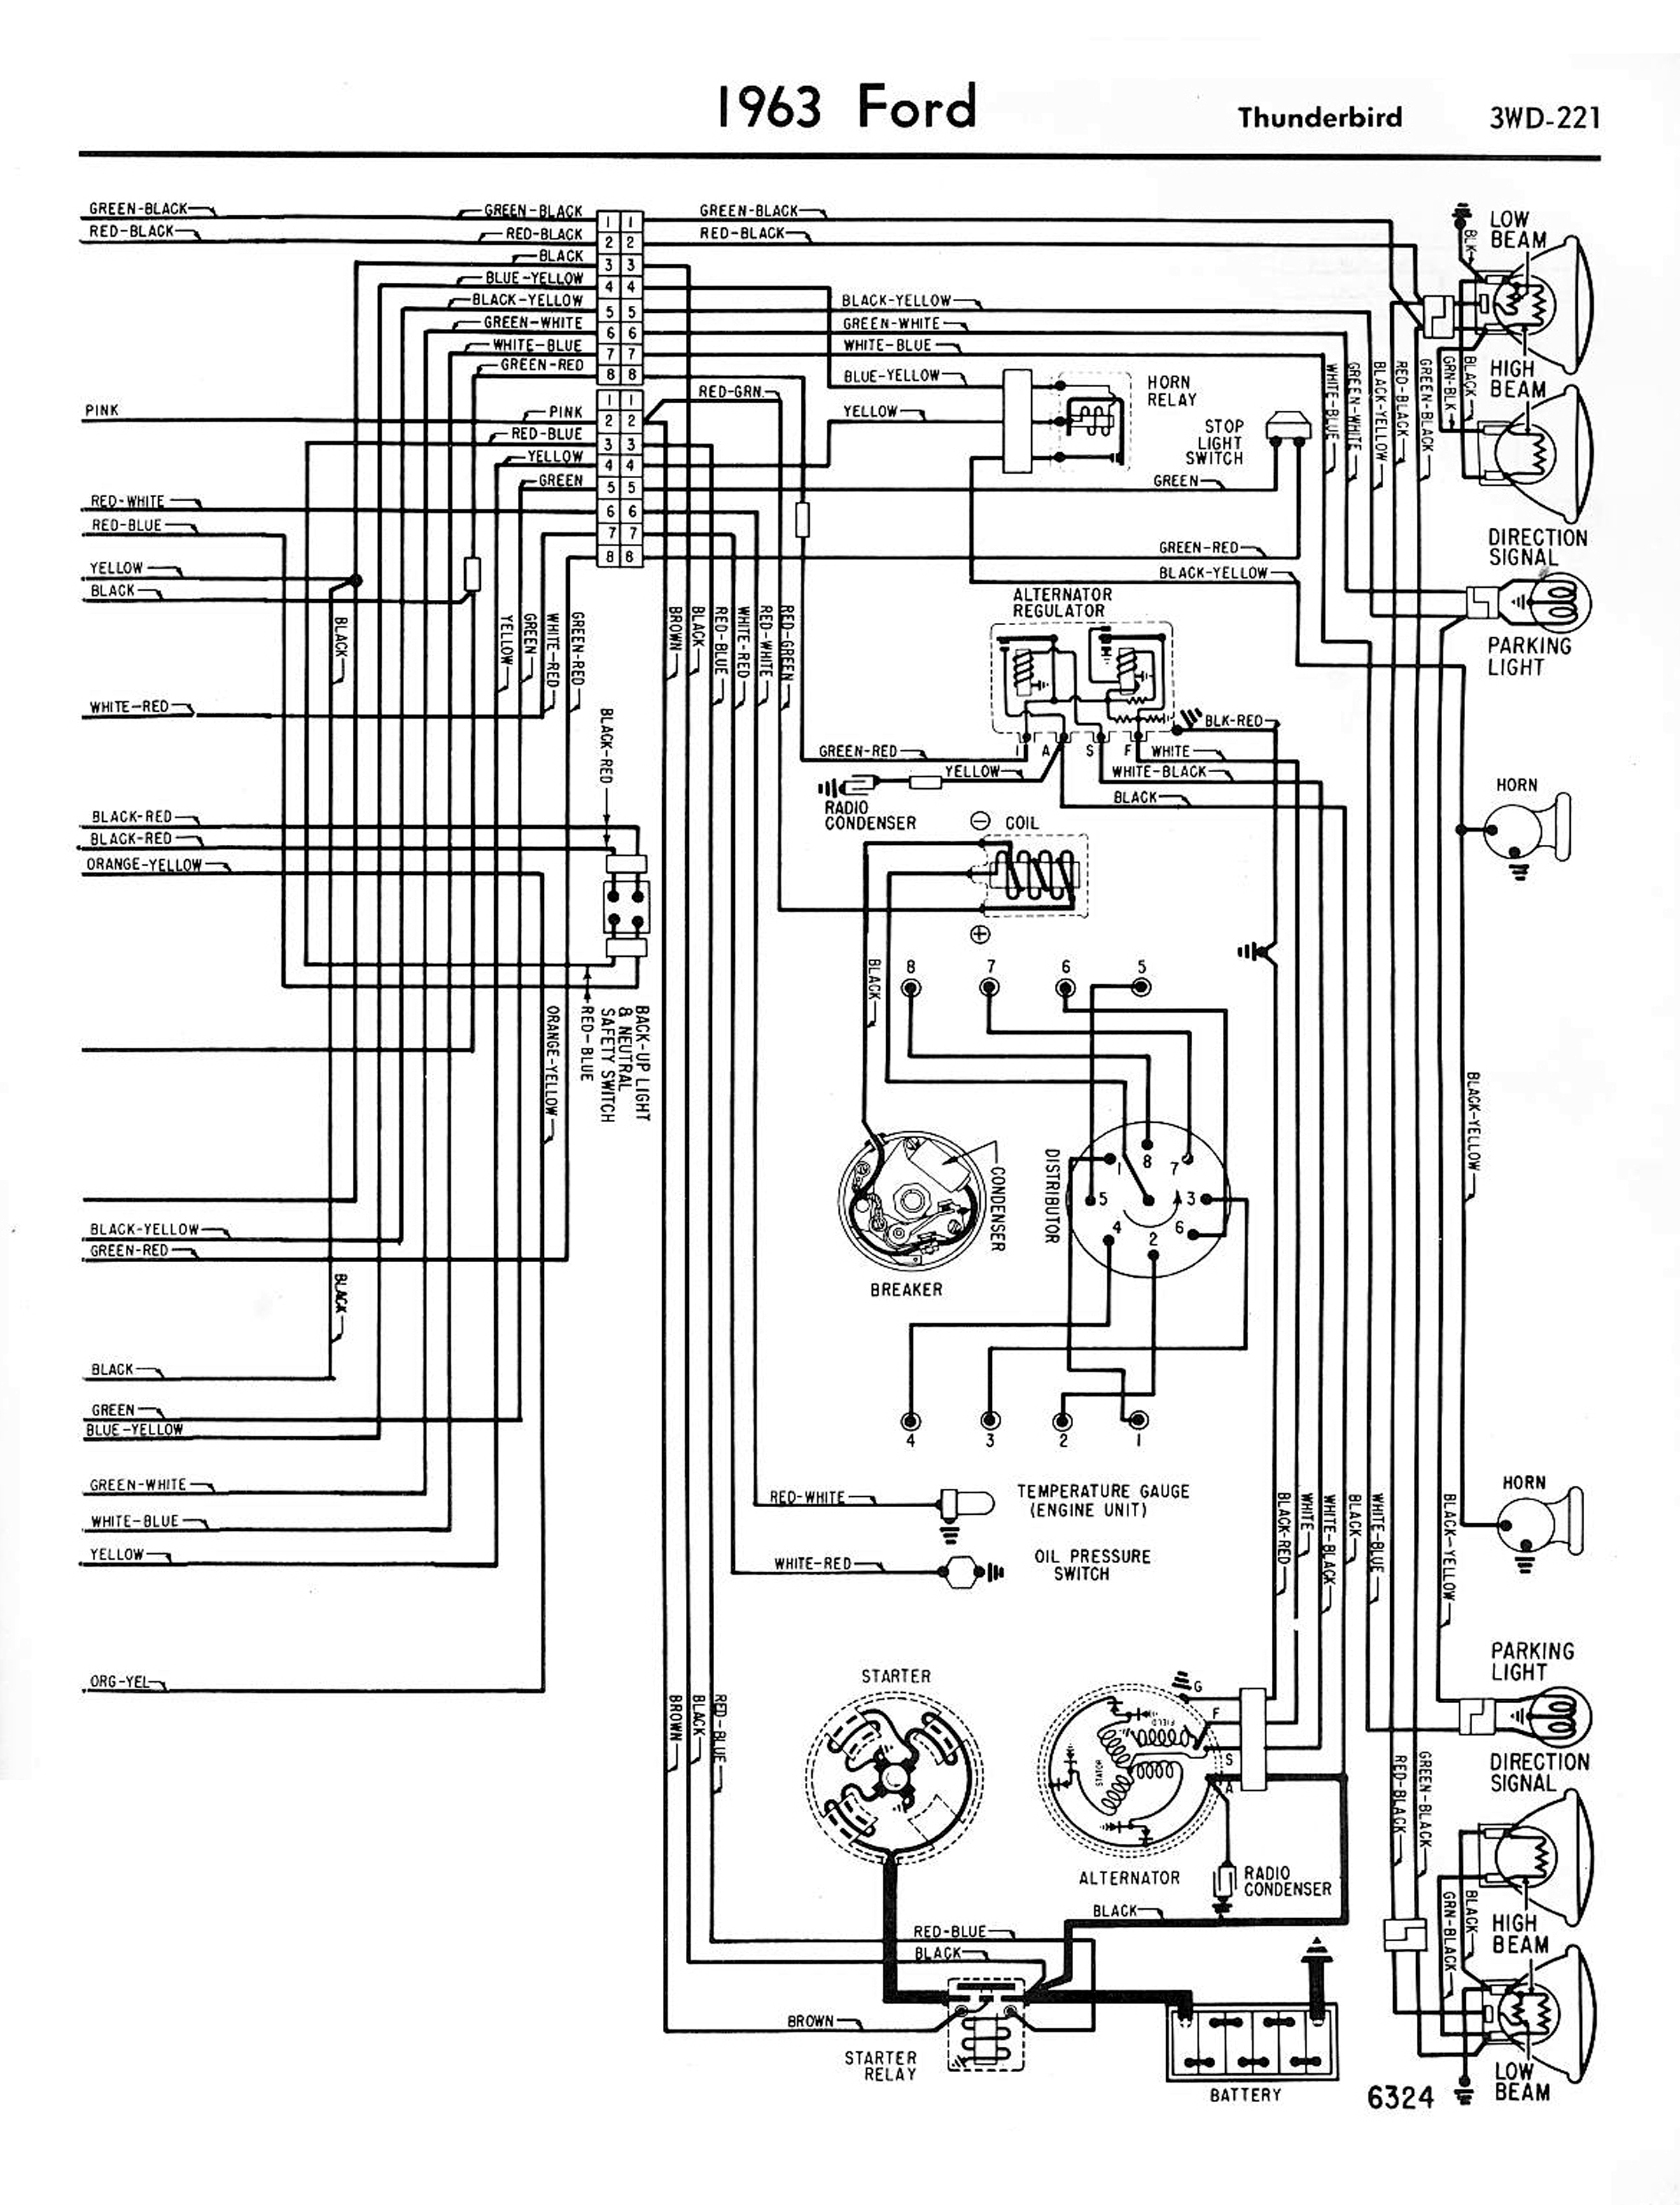 63 Thunderbird Voltage Regulator Wiring Diagram Library 66 Ford Falcon Flarebird Vacuum Diagrams